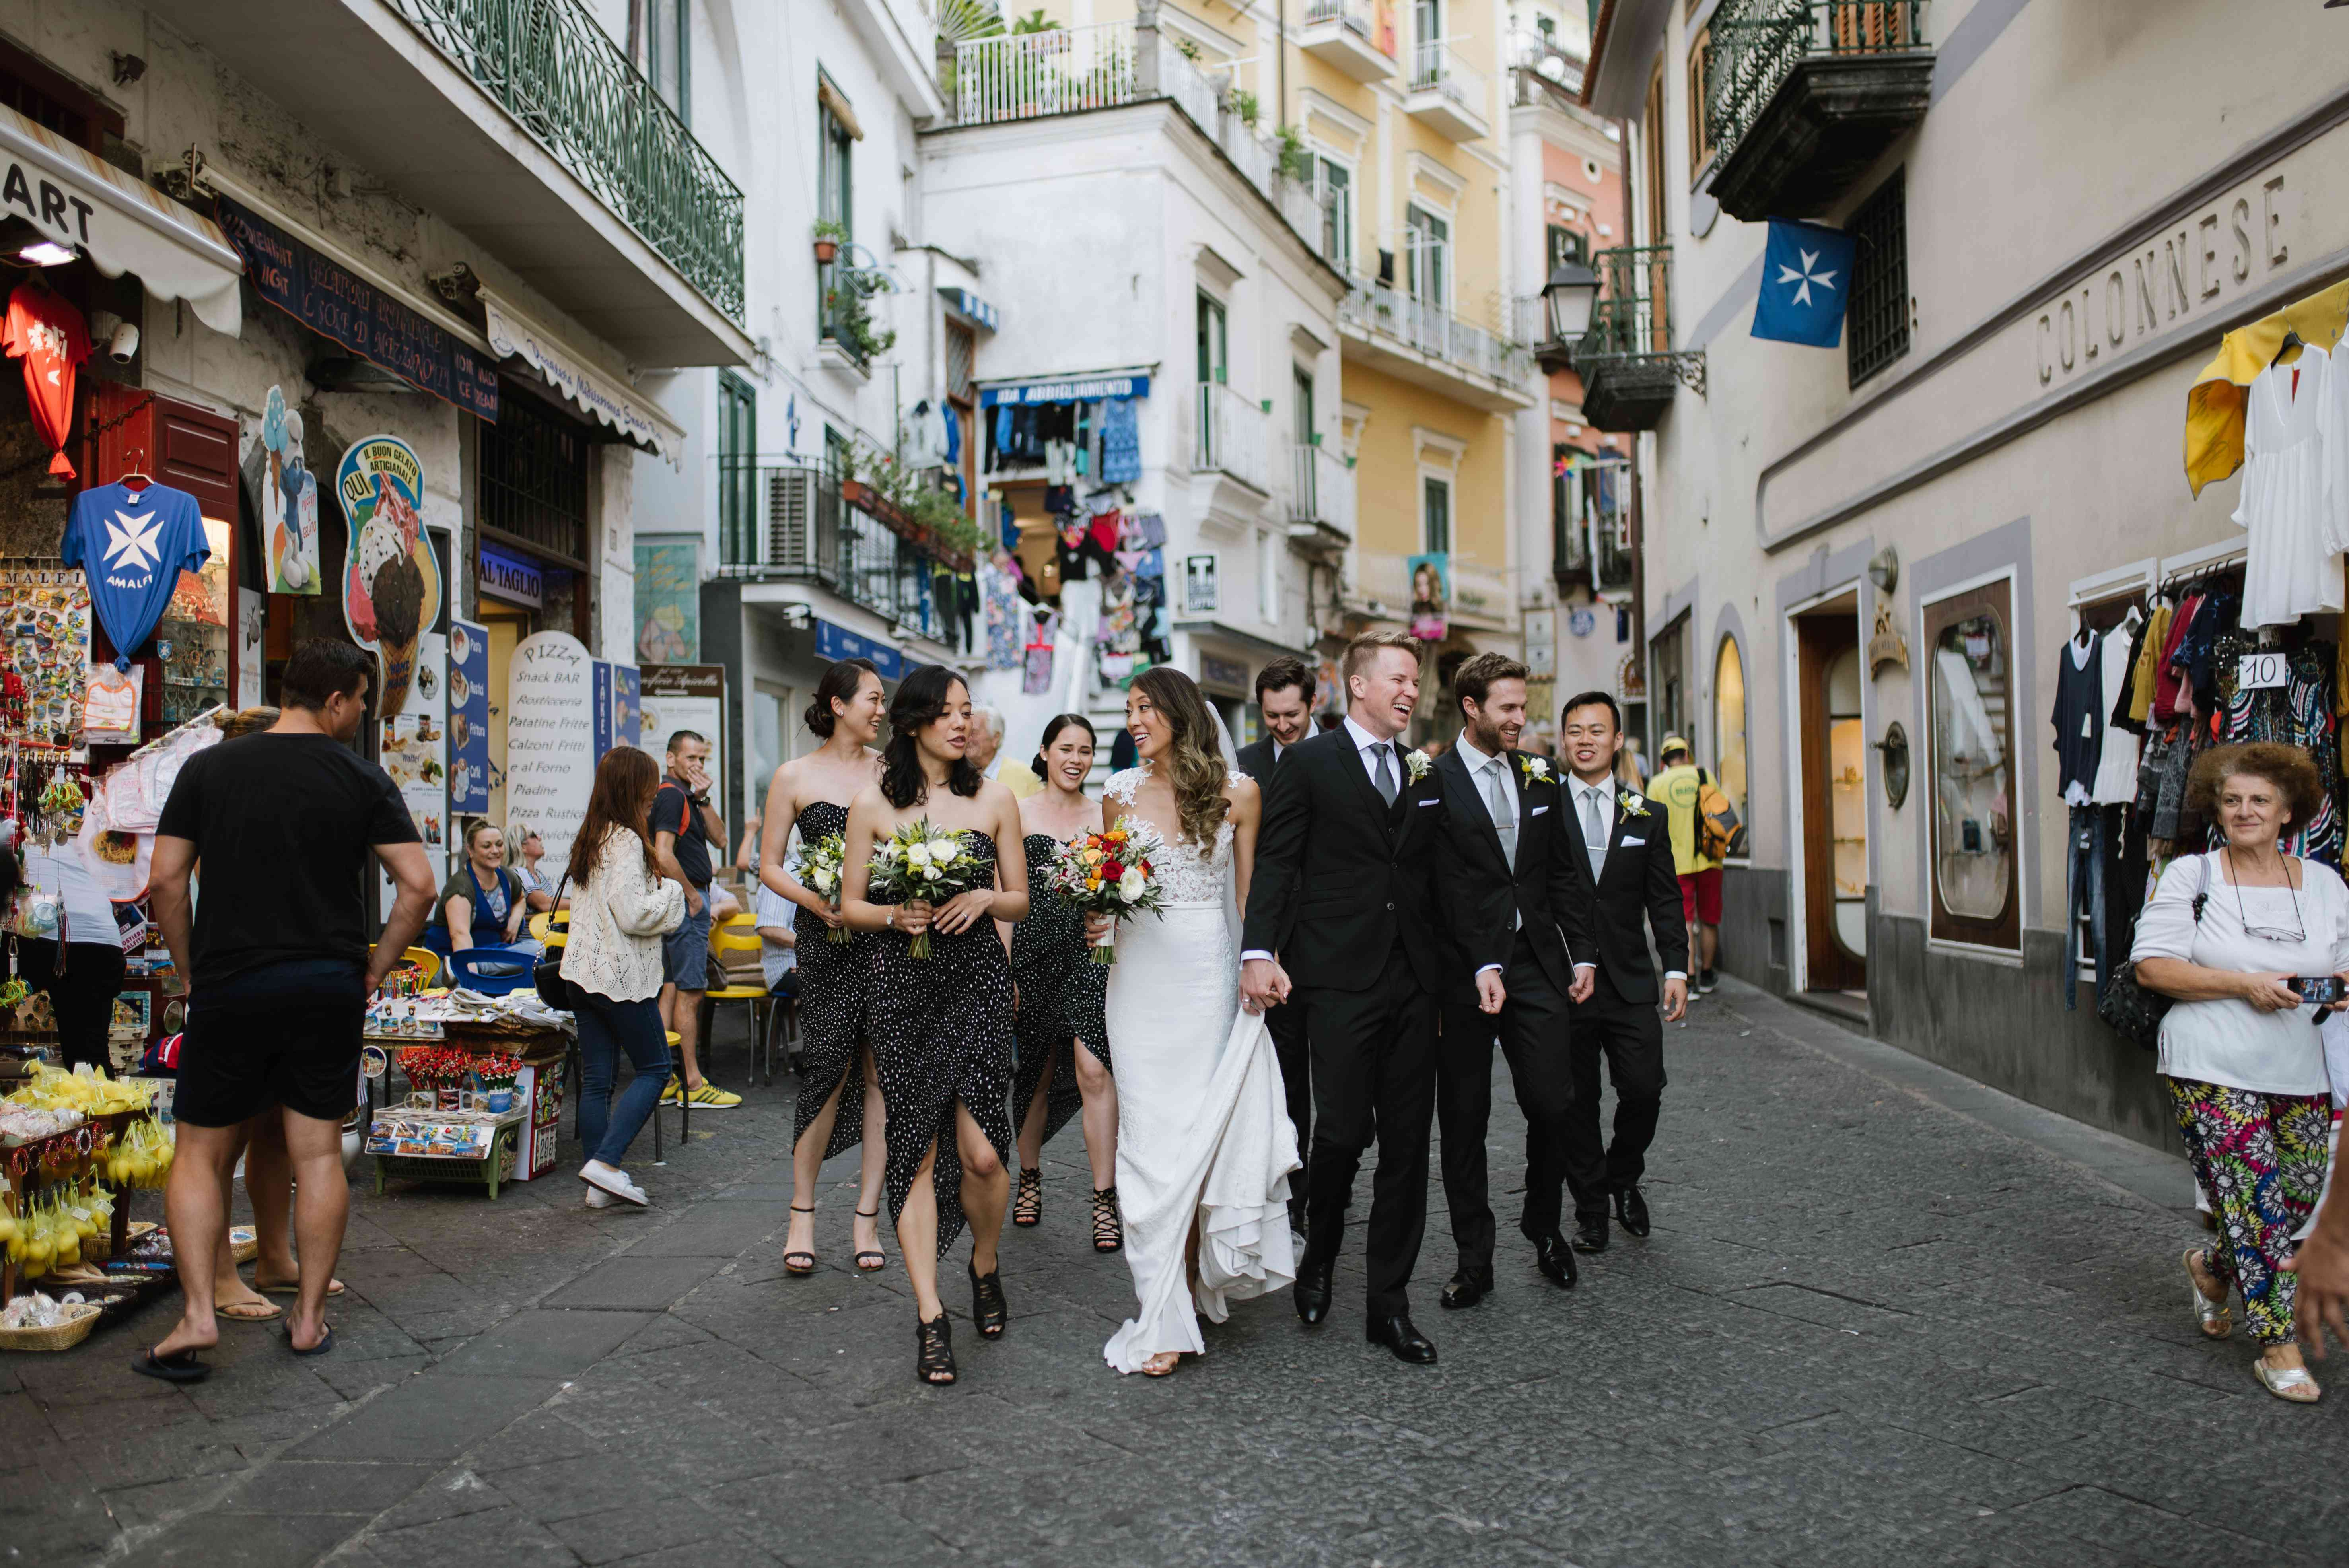 Bride and groom walking through streets